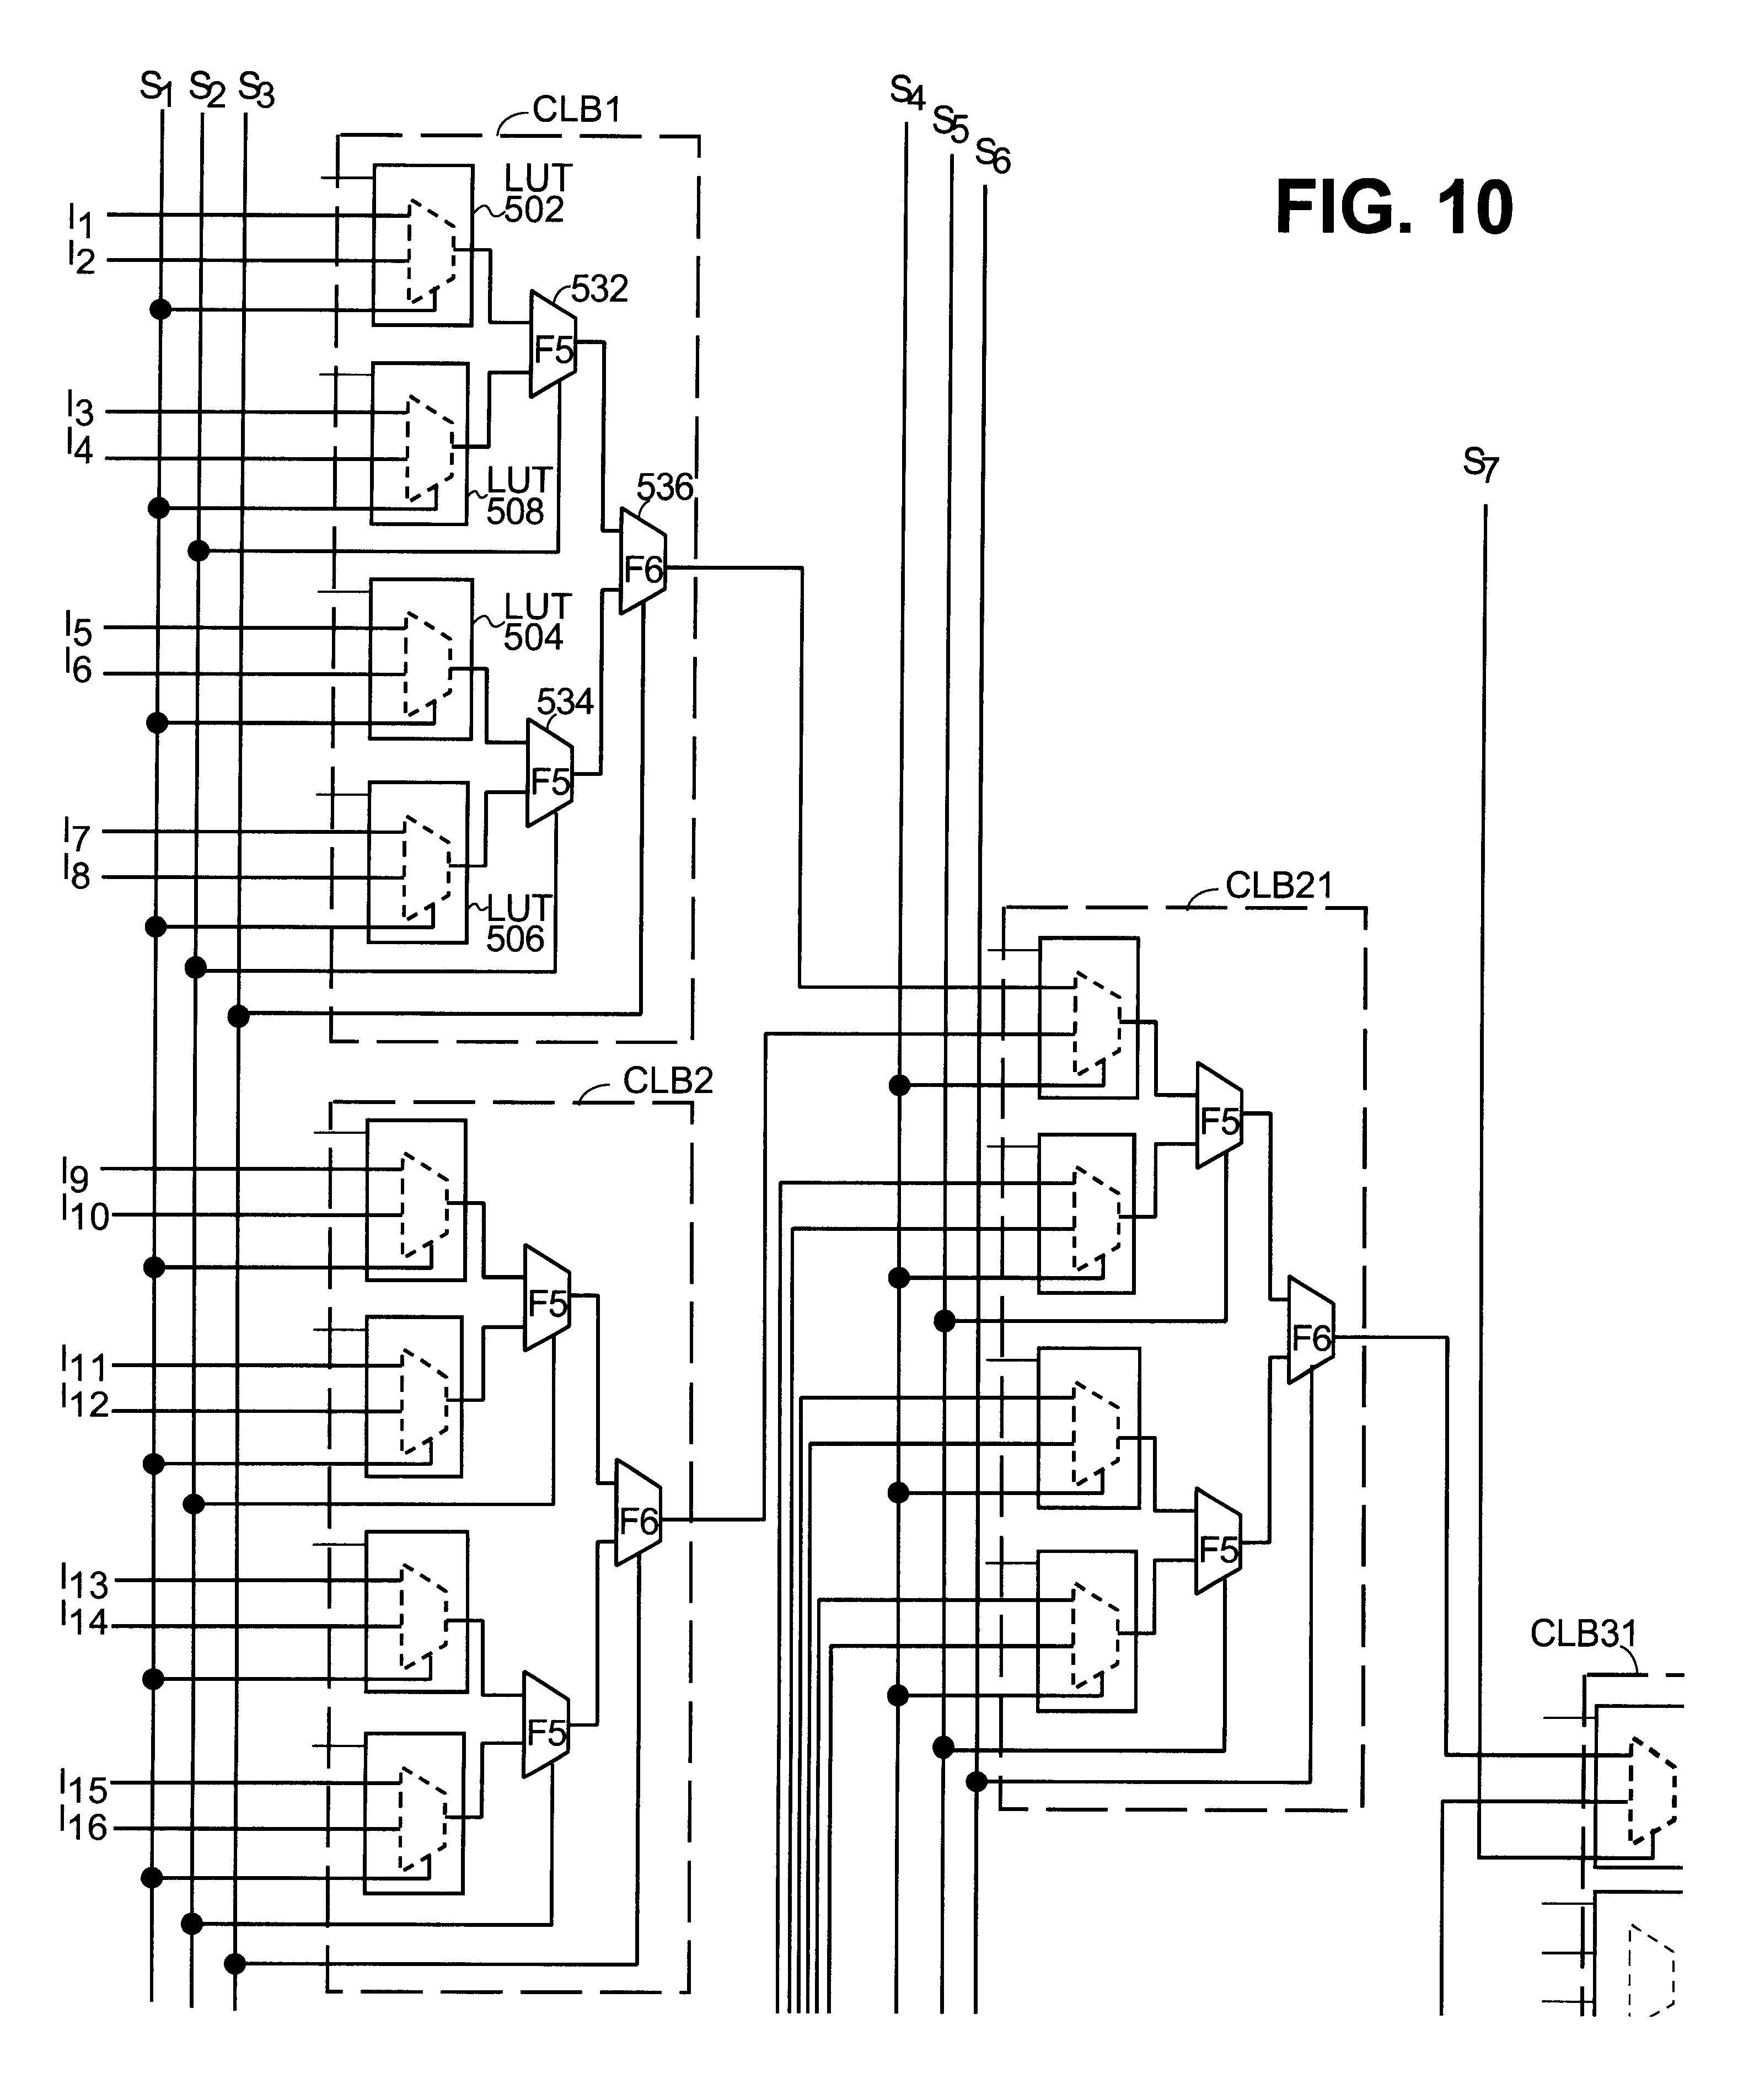 Patent Us6505337 Method For Implementing Large Multiplexers With Logic Diagram Mux Drawing